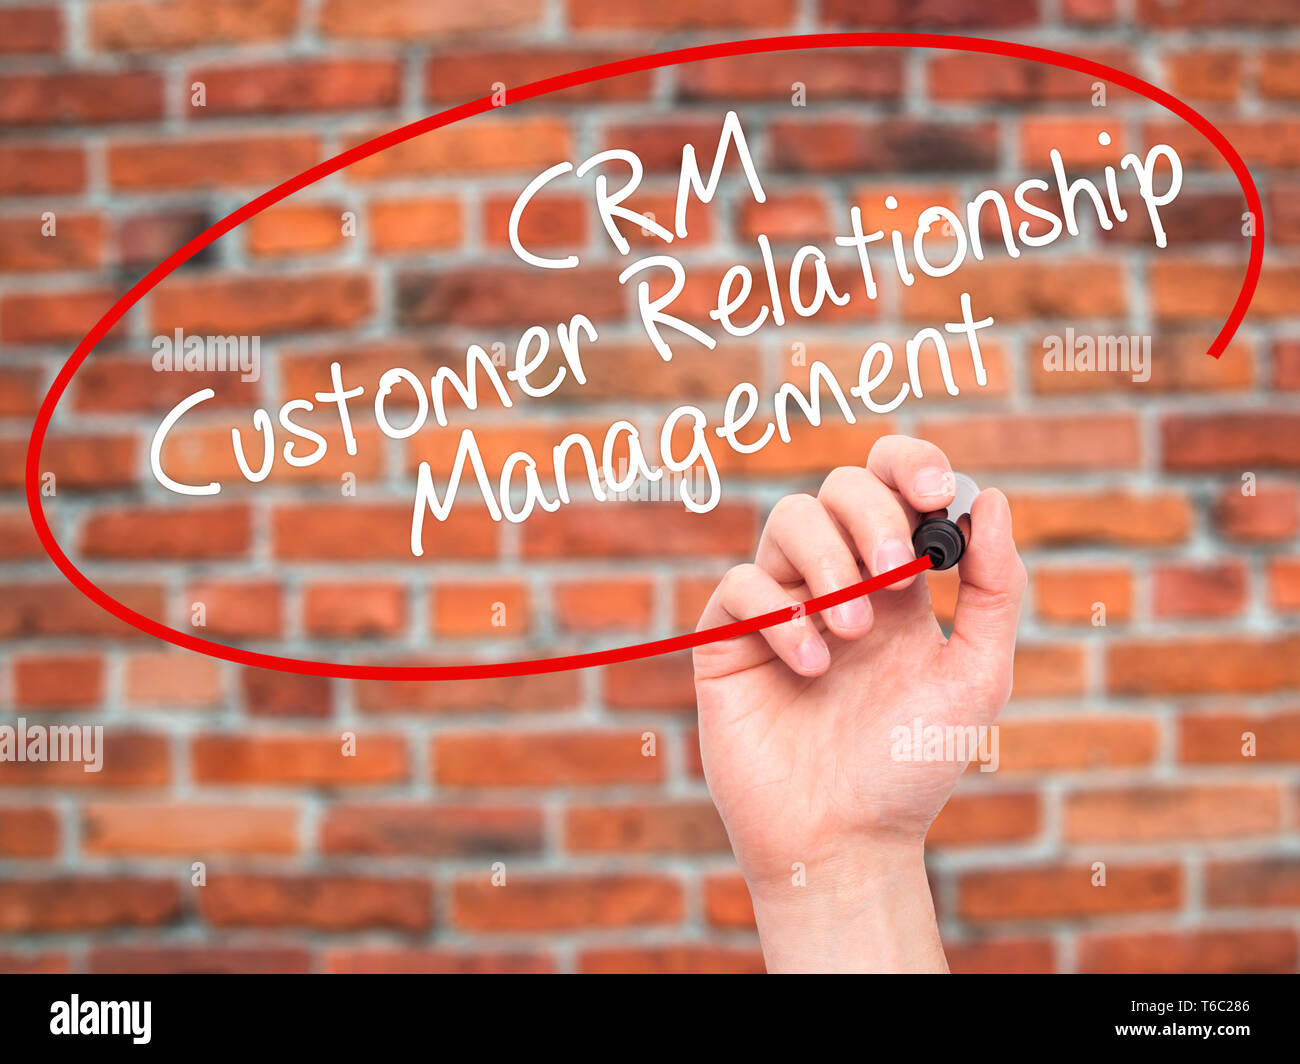 Man Hand writing CRM Customer Relationship Management  with black marker on visual screen - Stock Image